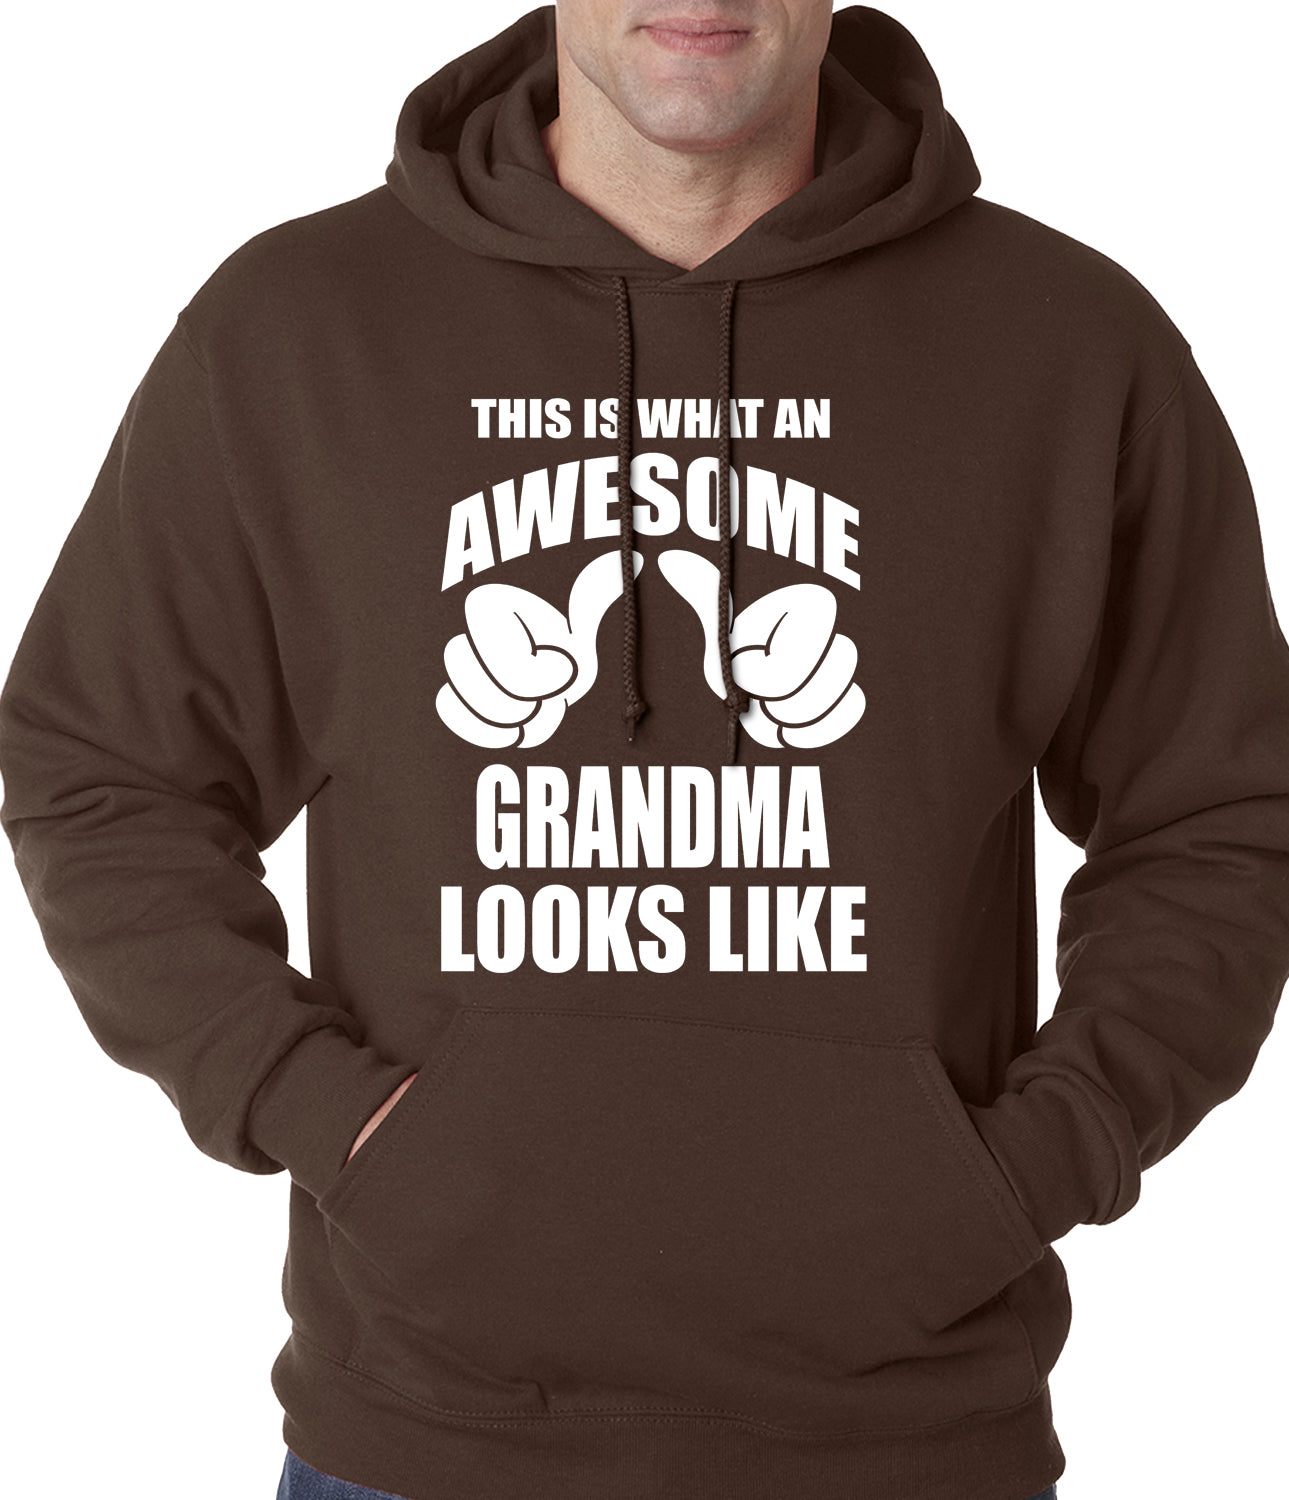 This Is What An Awesome Grandma Looks Like Adult Hoodie